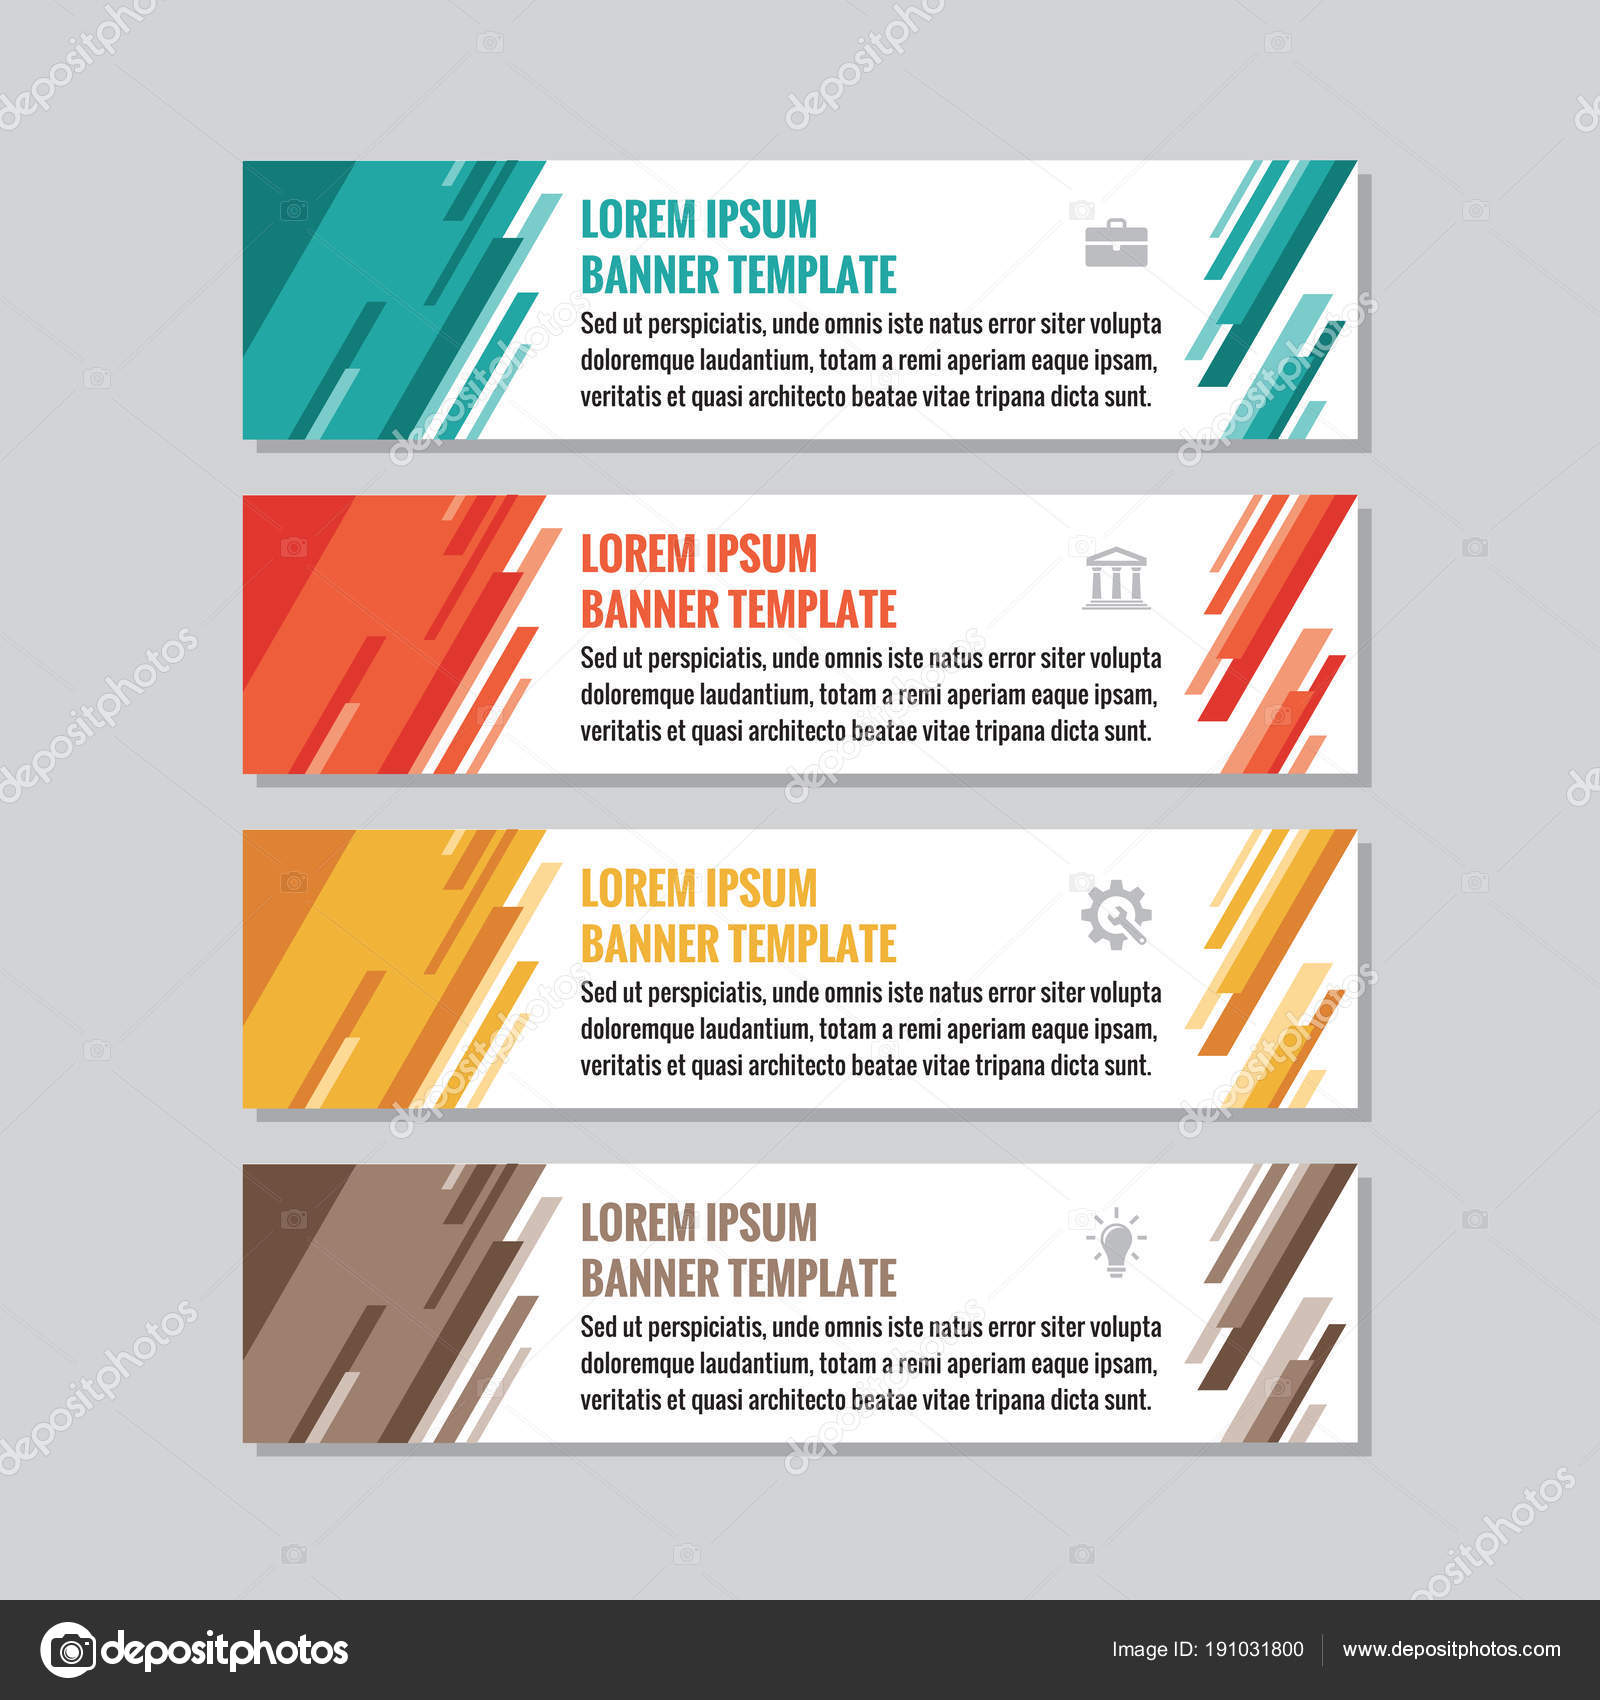 Business horizontal banner templates vector concept illustration business horizontal banner templates vector concept illustration abstract geometric background creative layout graphic design element wajeb Gallery